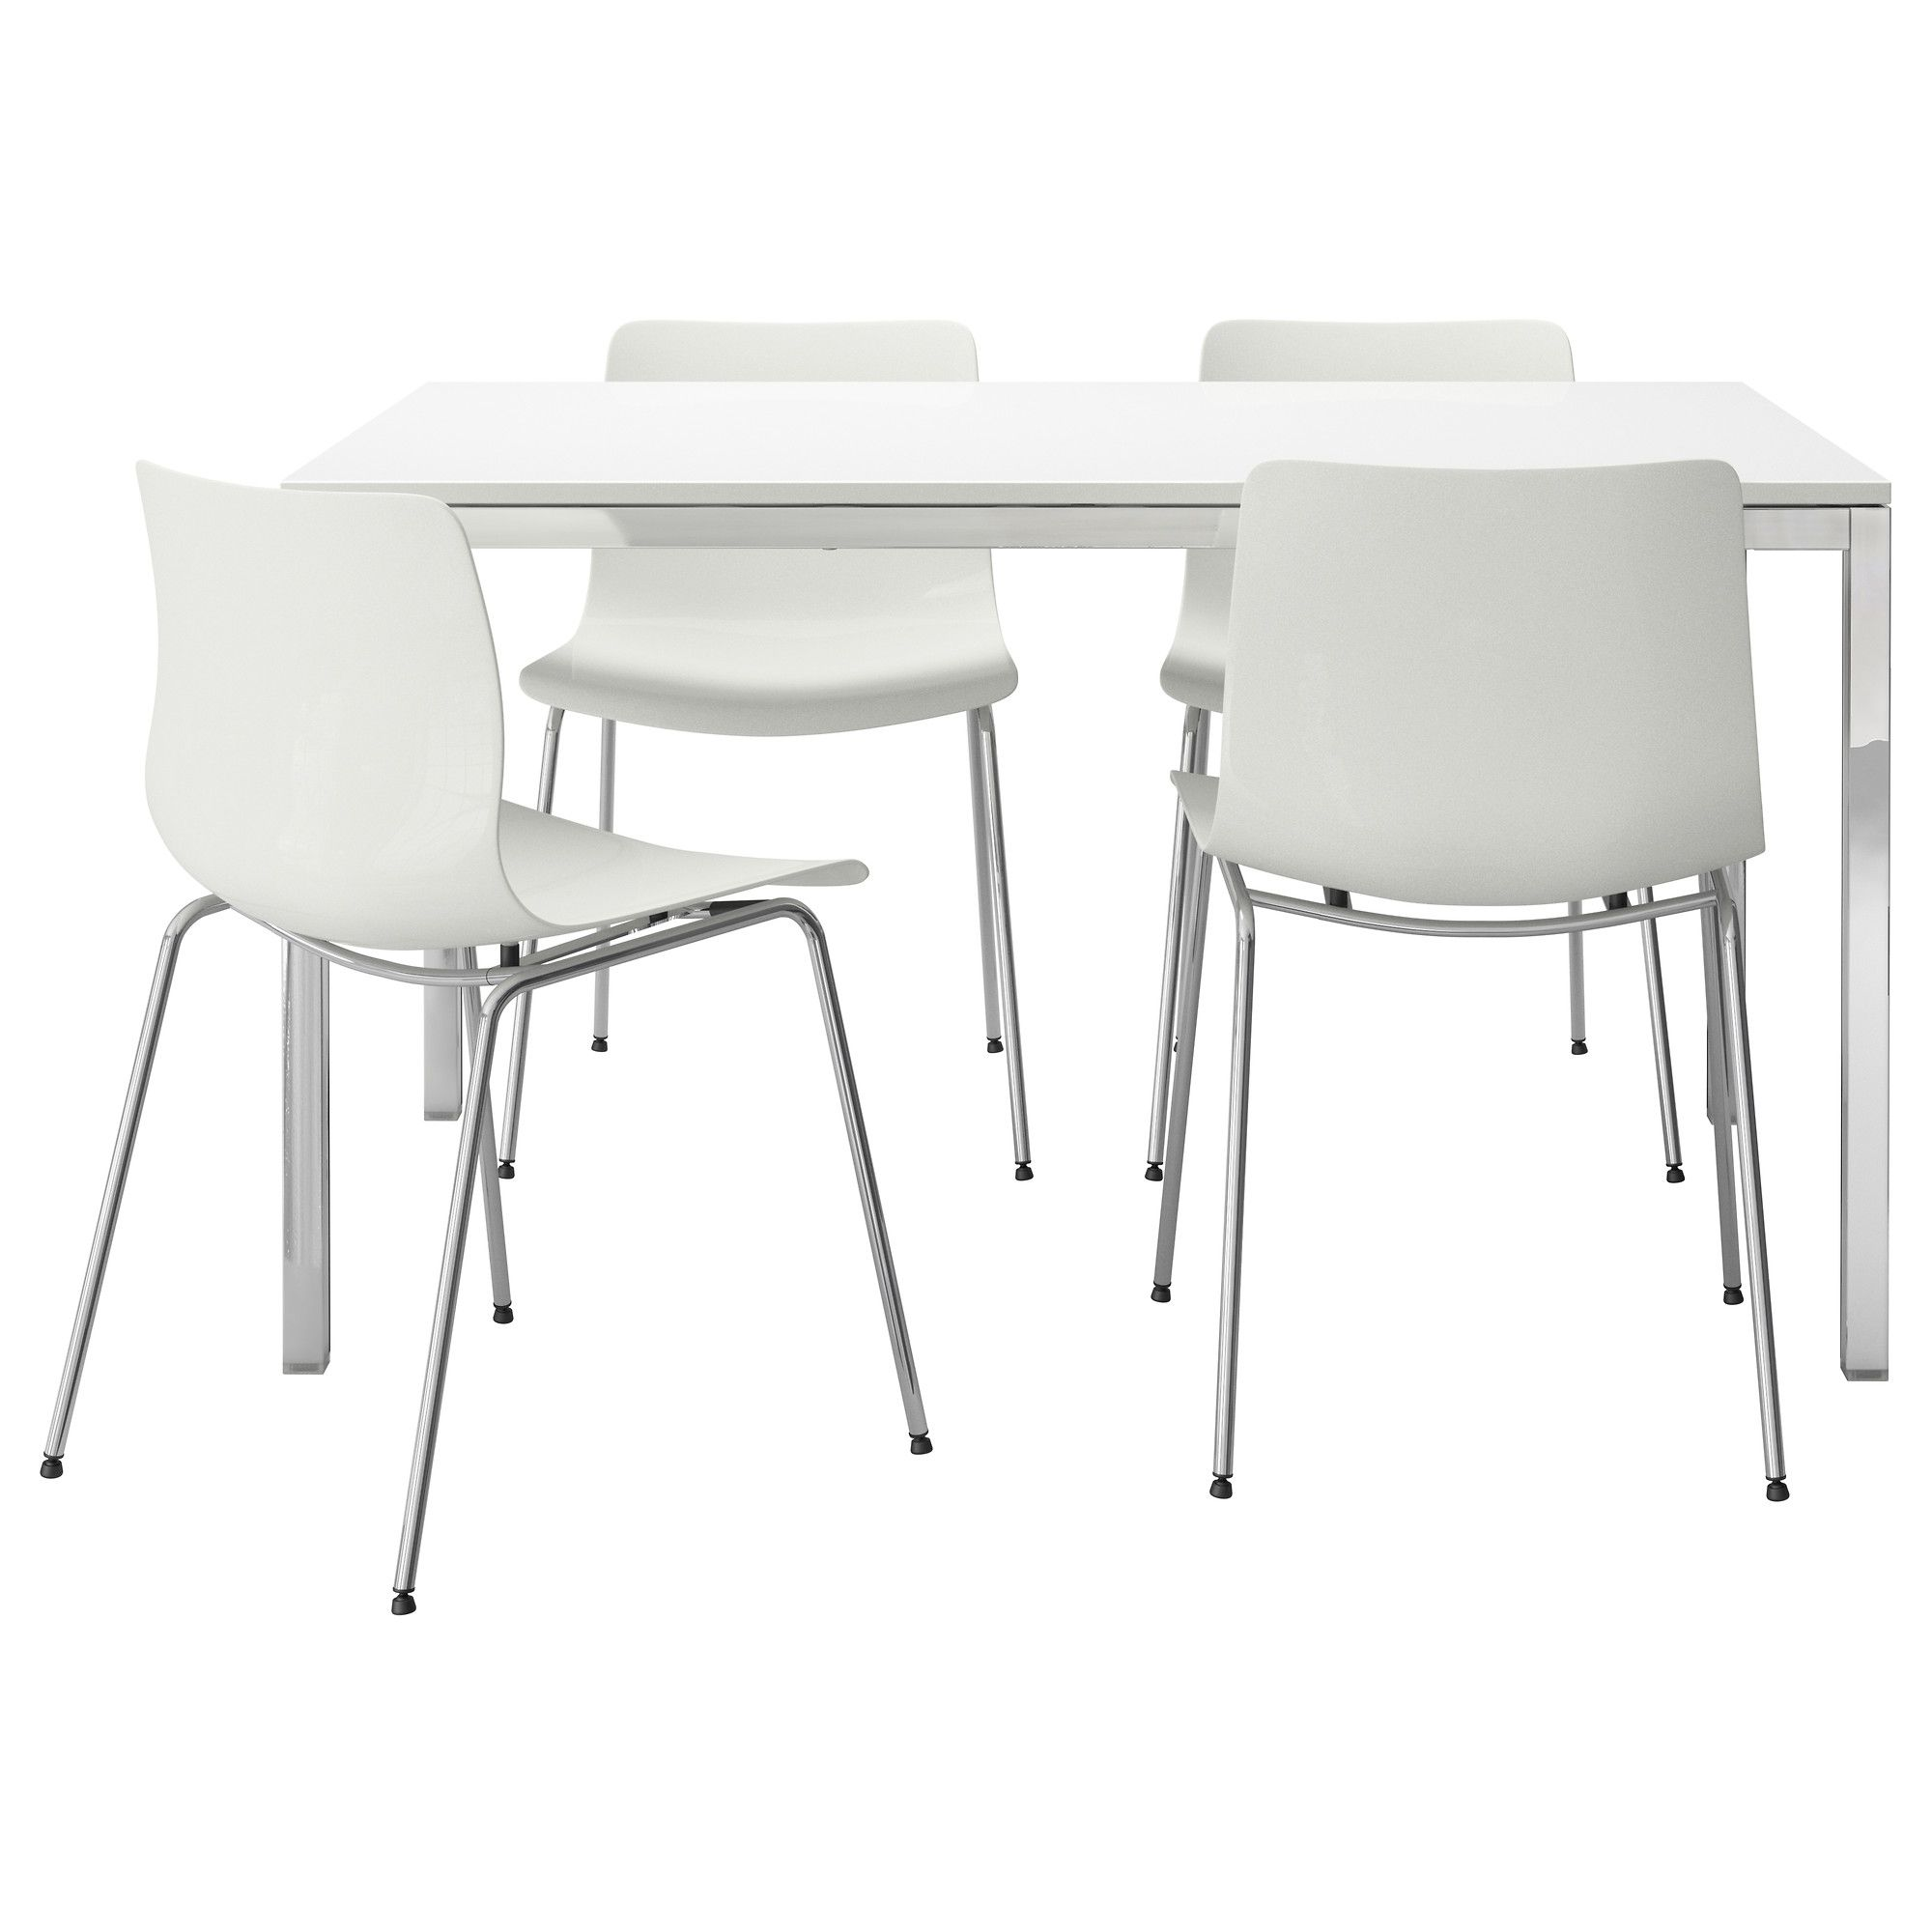 Kitchen Table   TORSBY/ERLAND Table And 4 Chairs   IKEA · Dining Room  FurnitureStudio ... Part 49